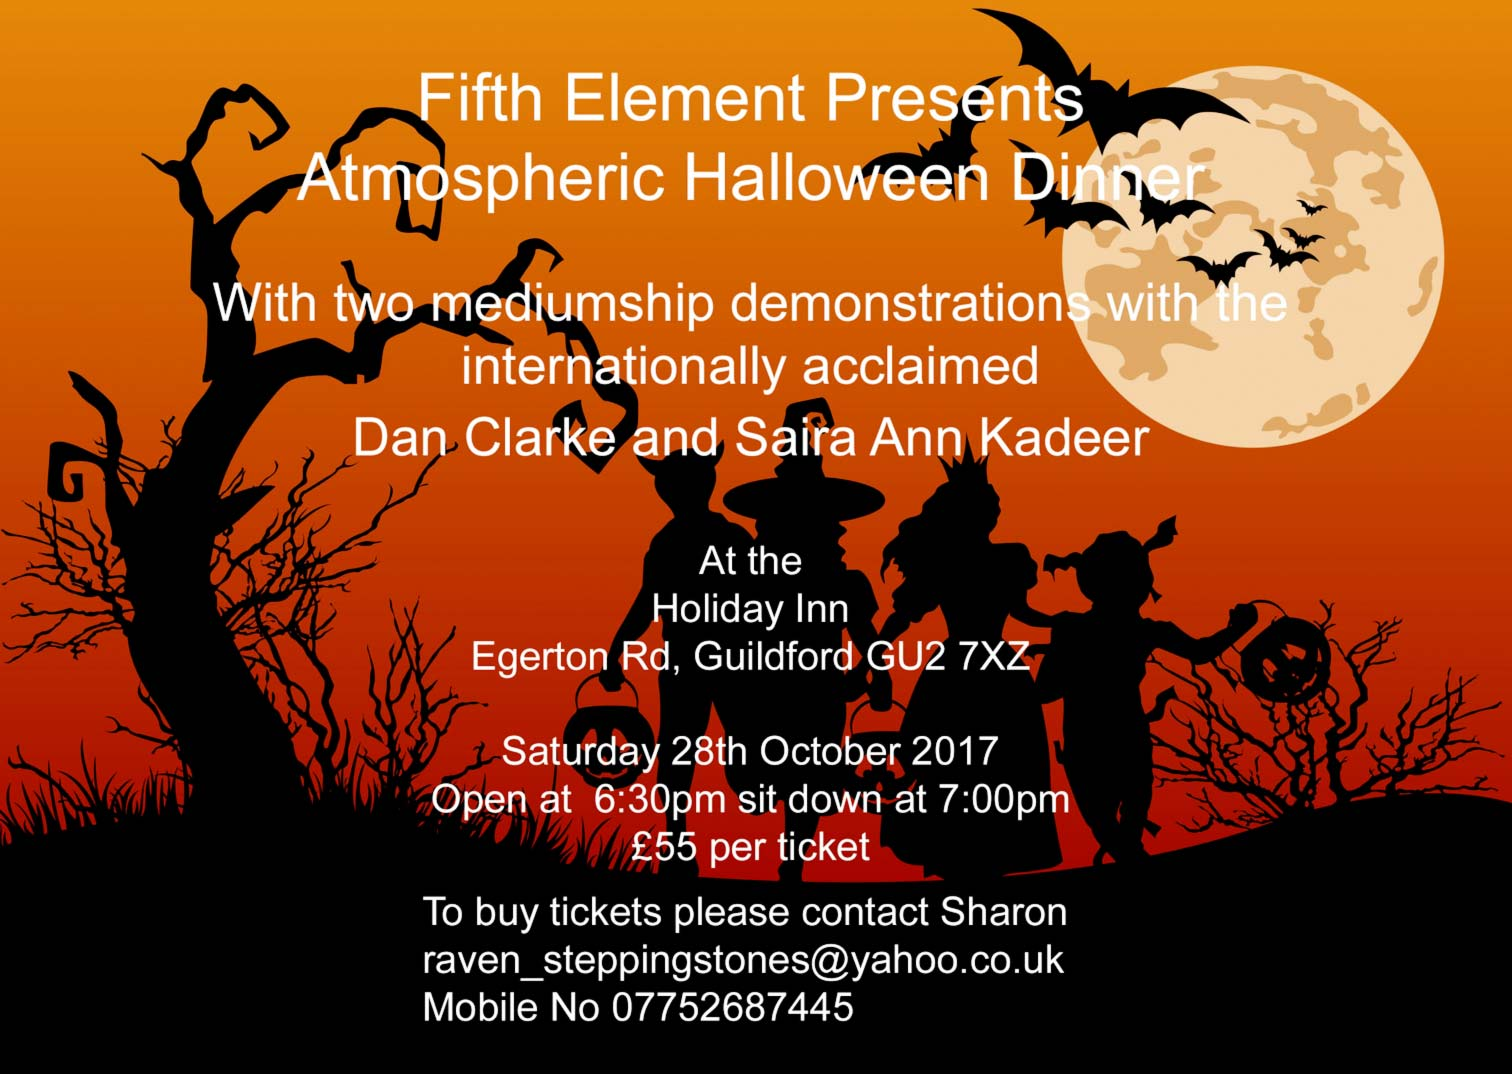 Fifth Element Presents  Atmospheric Halloween Dinner  With two mediumship demonstrations with the internationally acclaimed  Dan Clarke and Saira Ann Kadeer  At the Holiday Inn Egerton Rd, Guildford GU2 7XZ  Saturday 28th October 2017 Open at 6:30pm sit down at 7:00pm  £55 per ticket  To buy tickets please contact  Sharon raven_steppingstones@yahoo.co.uk  Mobile No 07752687445